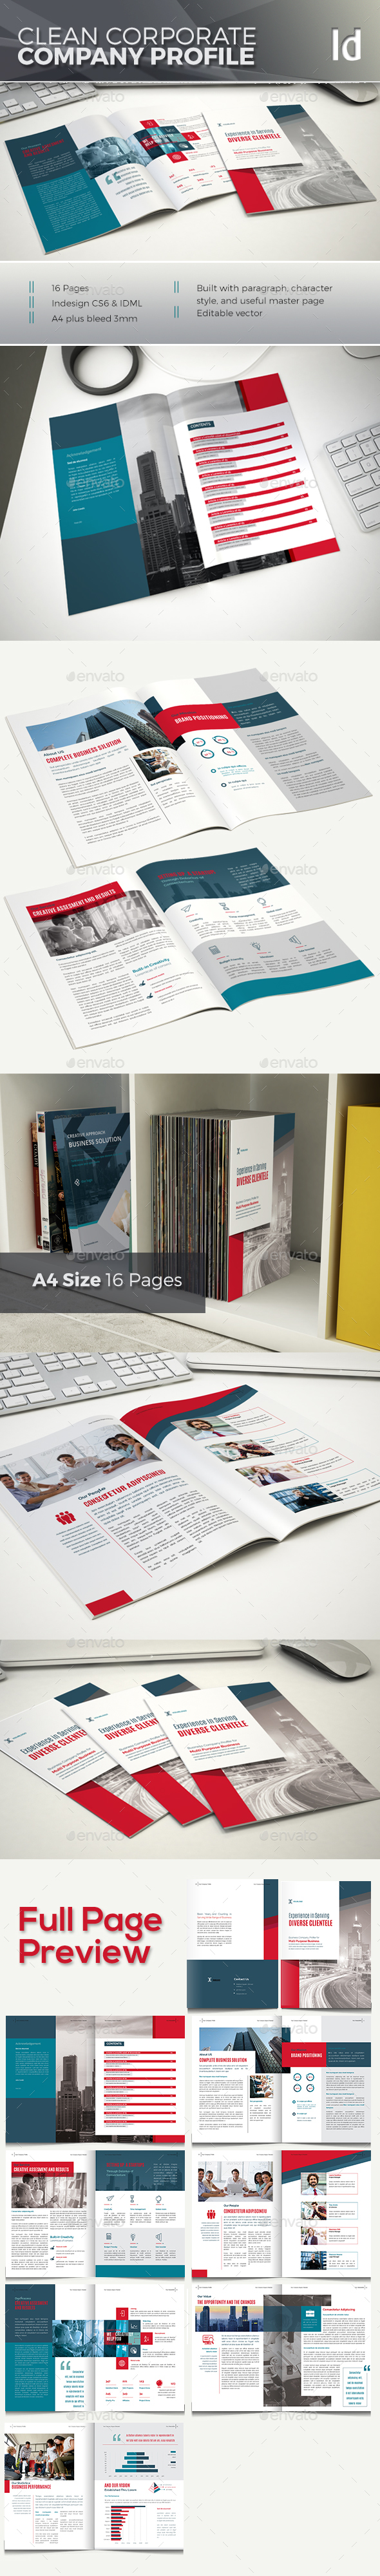 Corporate Company Profile - Brochures Print Templates